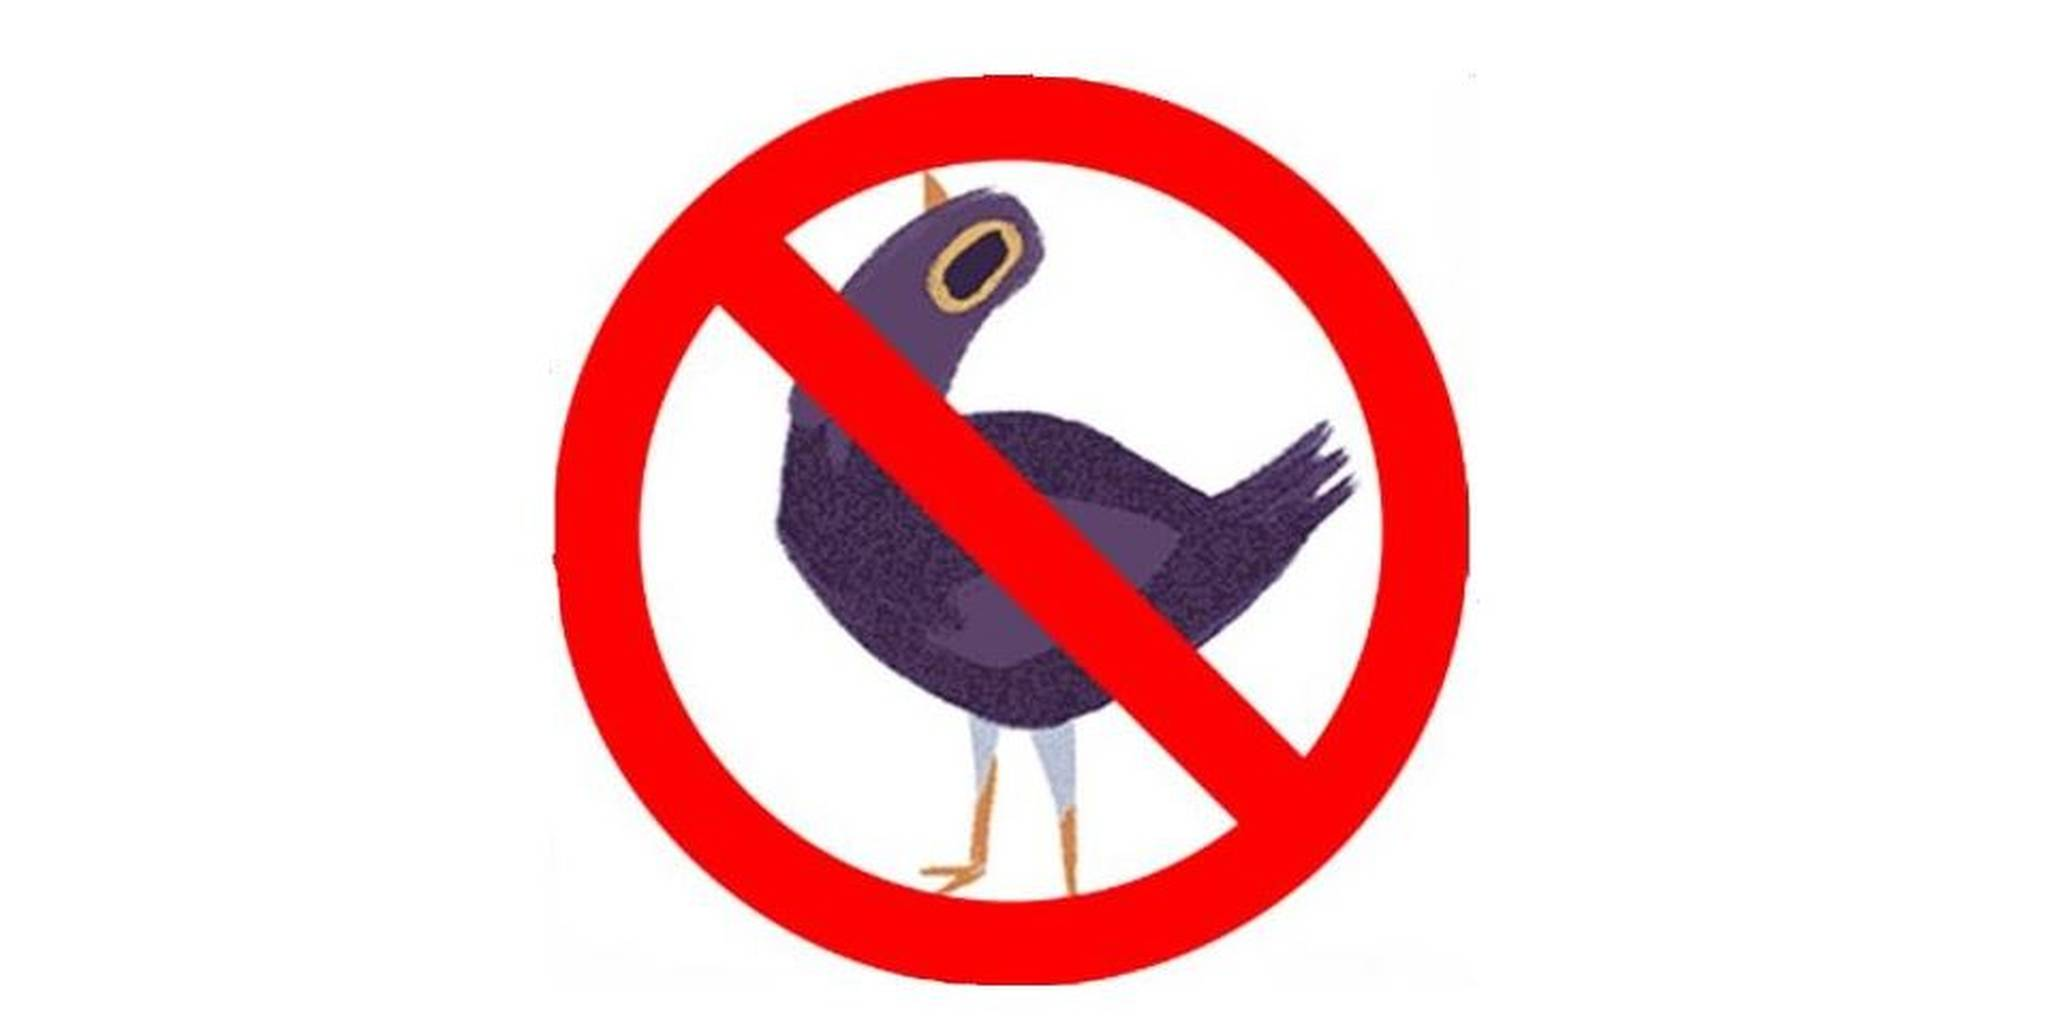 What Is Trash Dove The Purple Bird Spamming Facebook